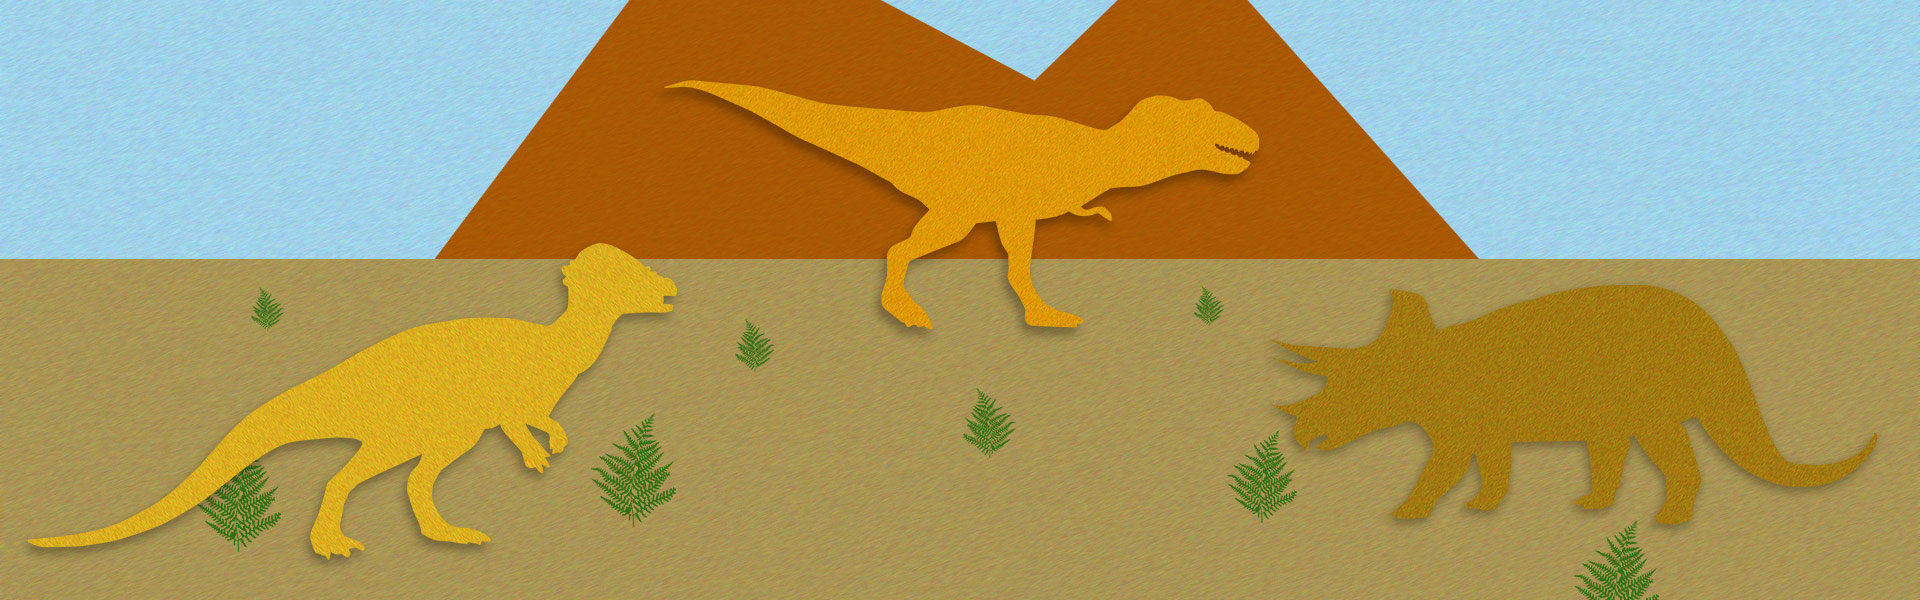 dinosaur-animation-scene-hero-desktop